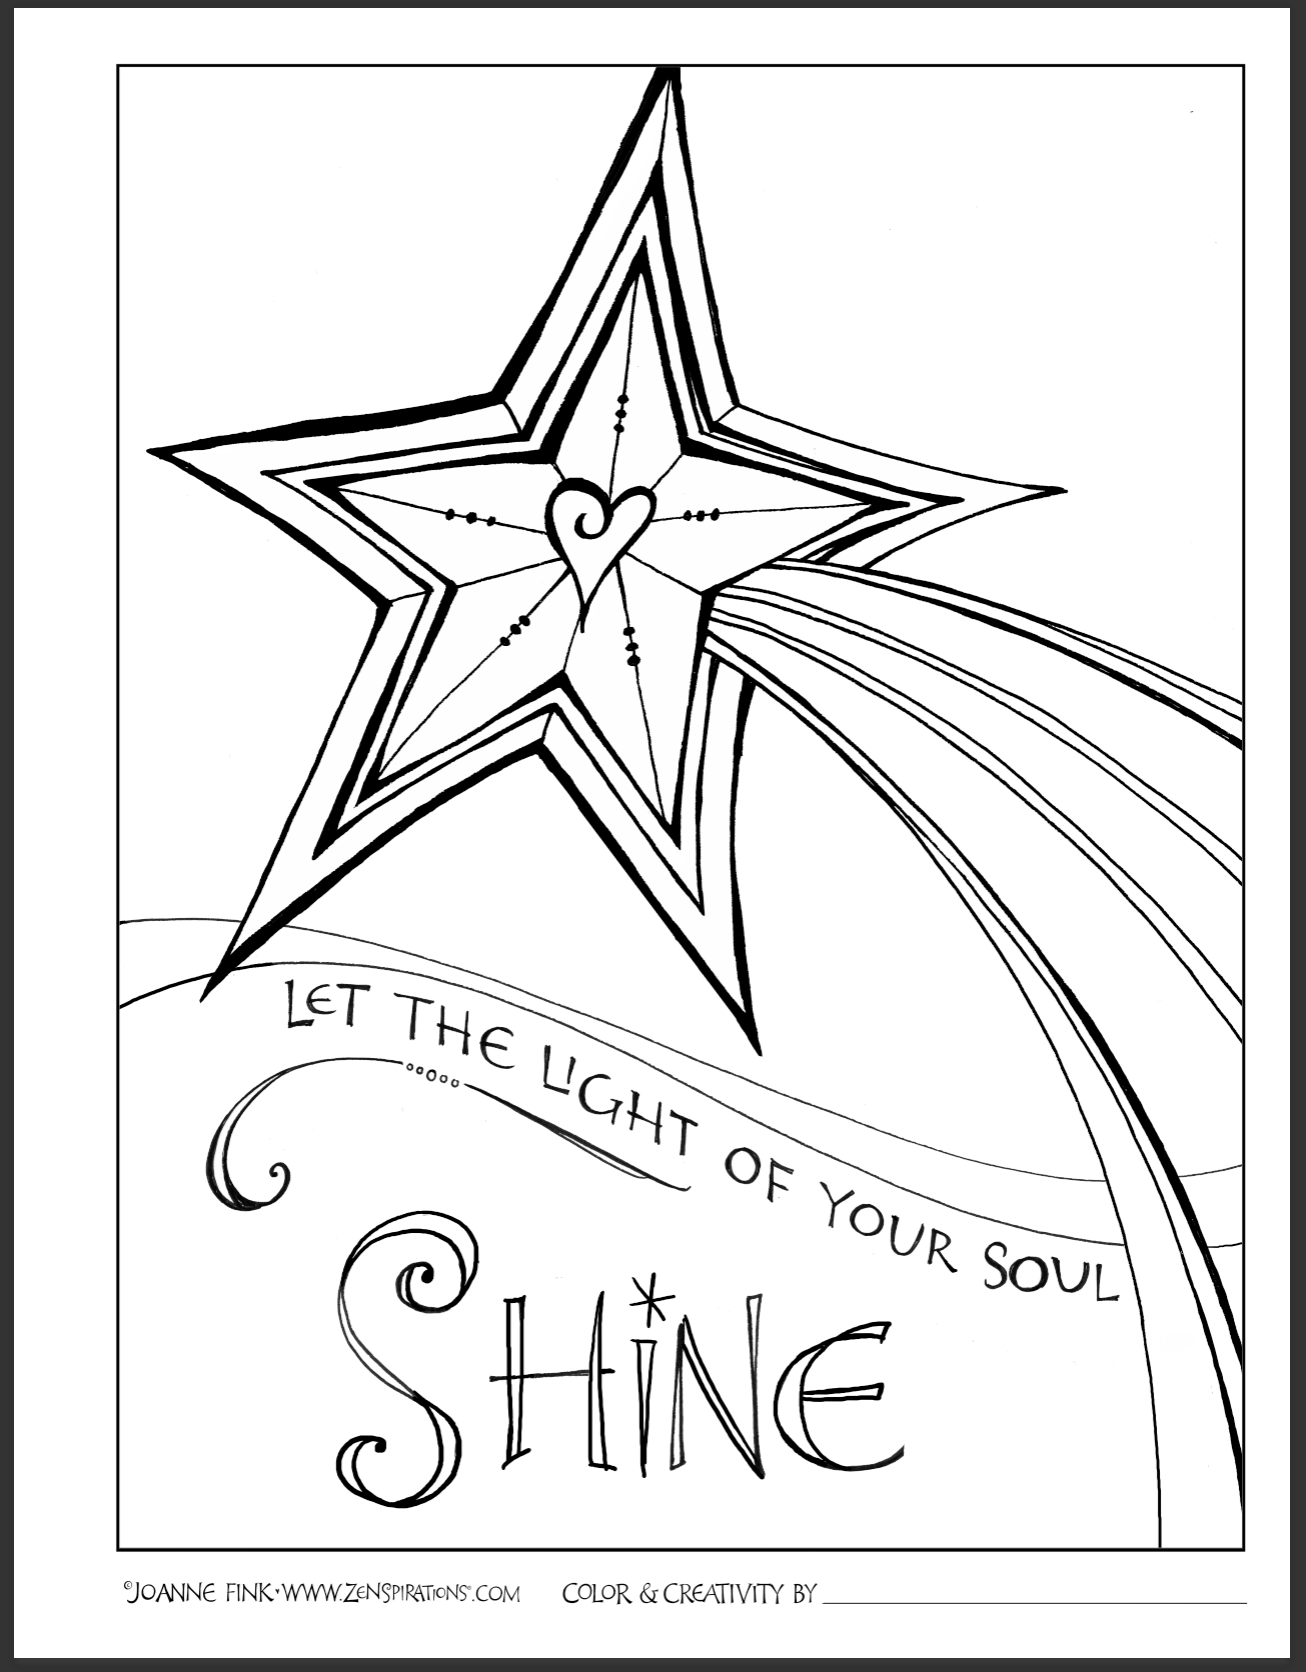 1306x1672 Free Downloadable Coloring Page On This Week's Zenspirations Blog